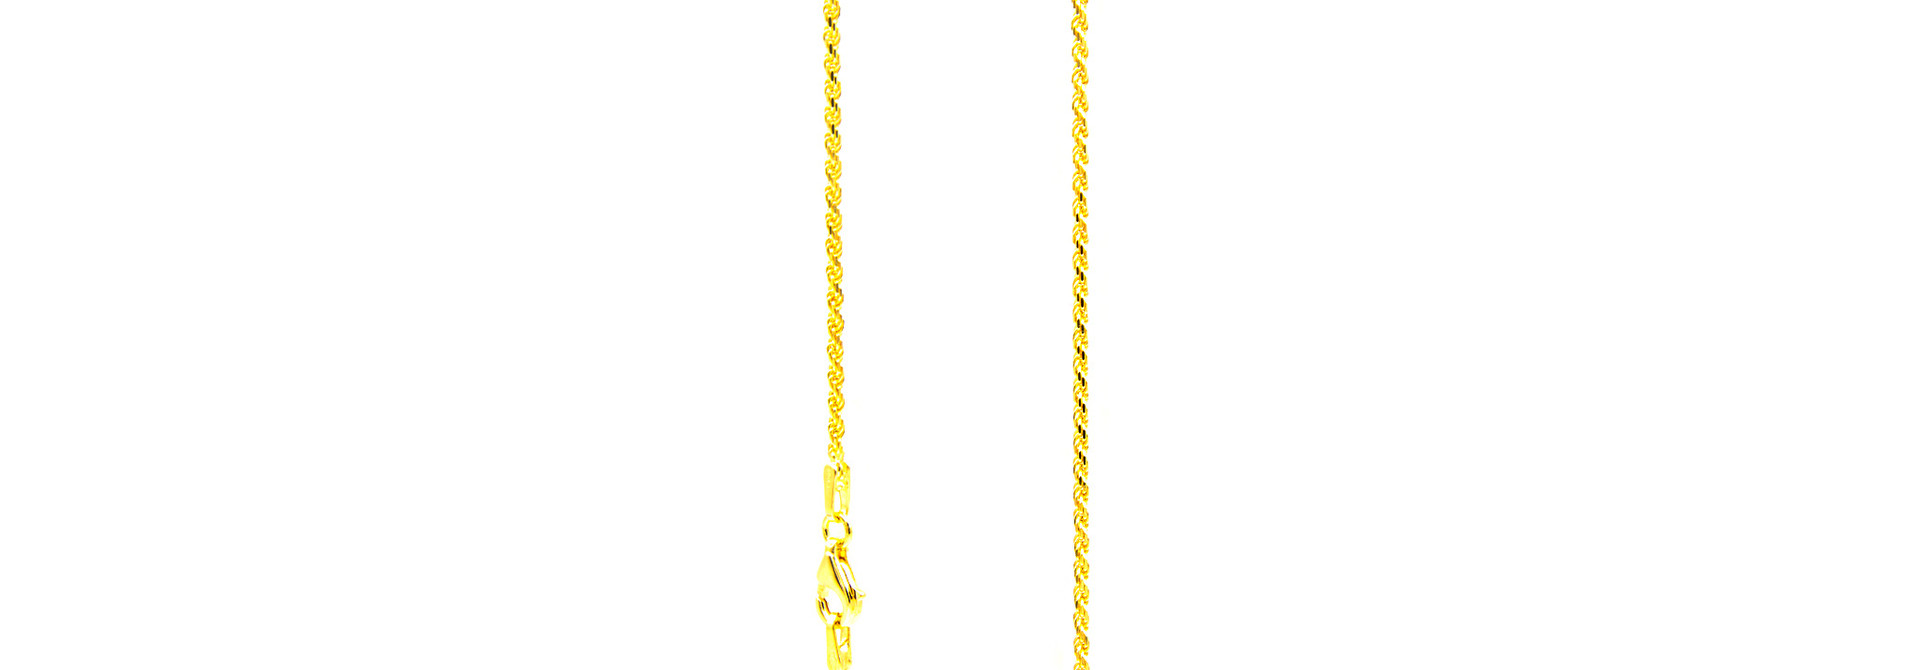 Rope chain cubic massief goud 18k 1.5mm